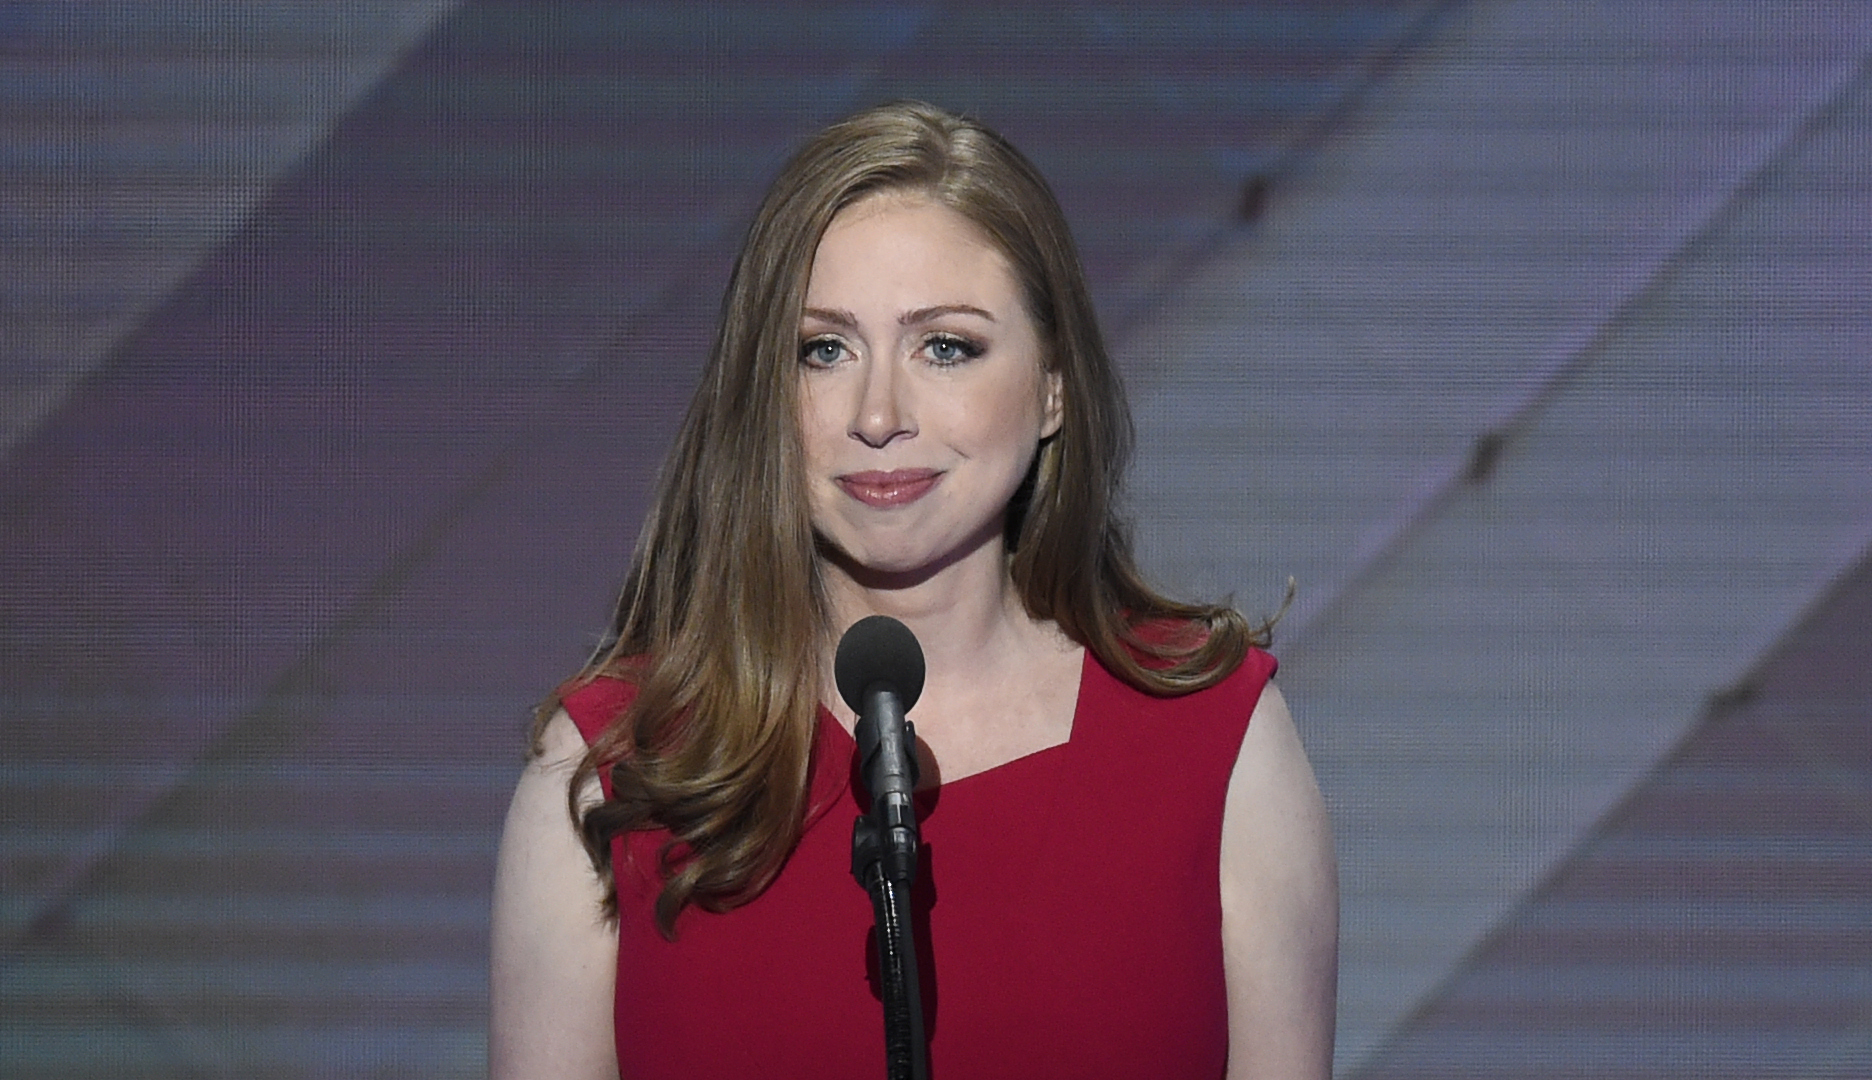 Activists Blamed Chelsea Clinton For NZ Shooting 'To Speak Truth To Power'